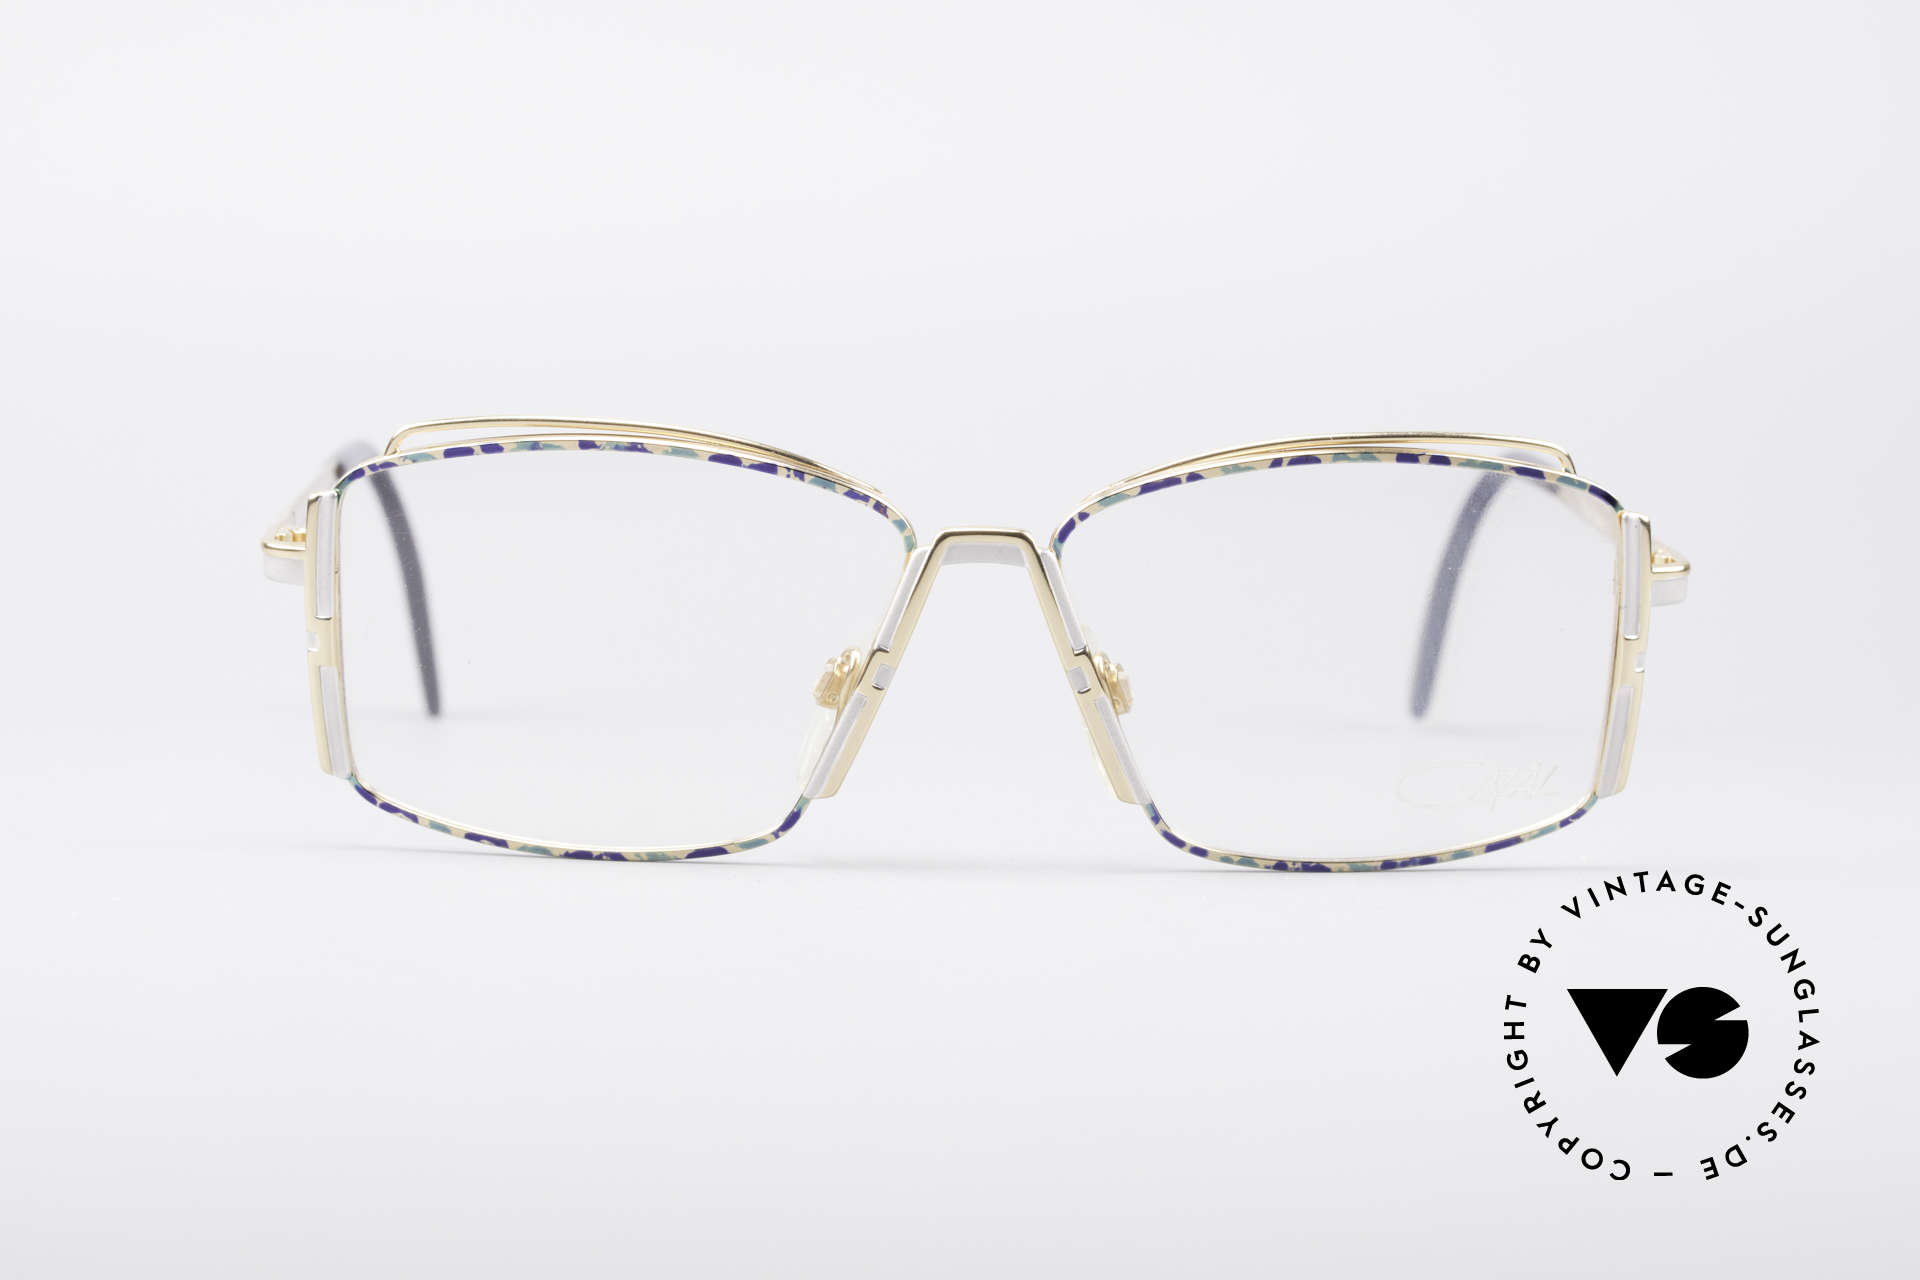 Cazal 264 No Retro True Vintage Frame, fashionable designer piece, full of verve; true vintage!, Made for Women